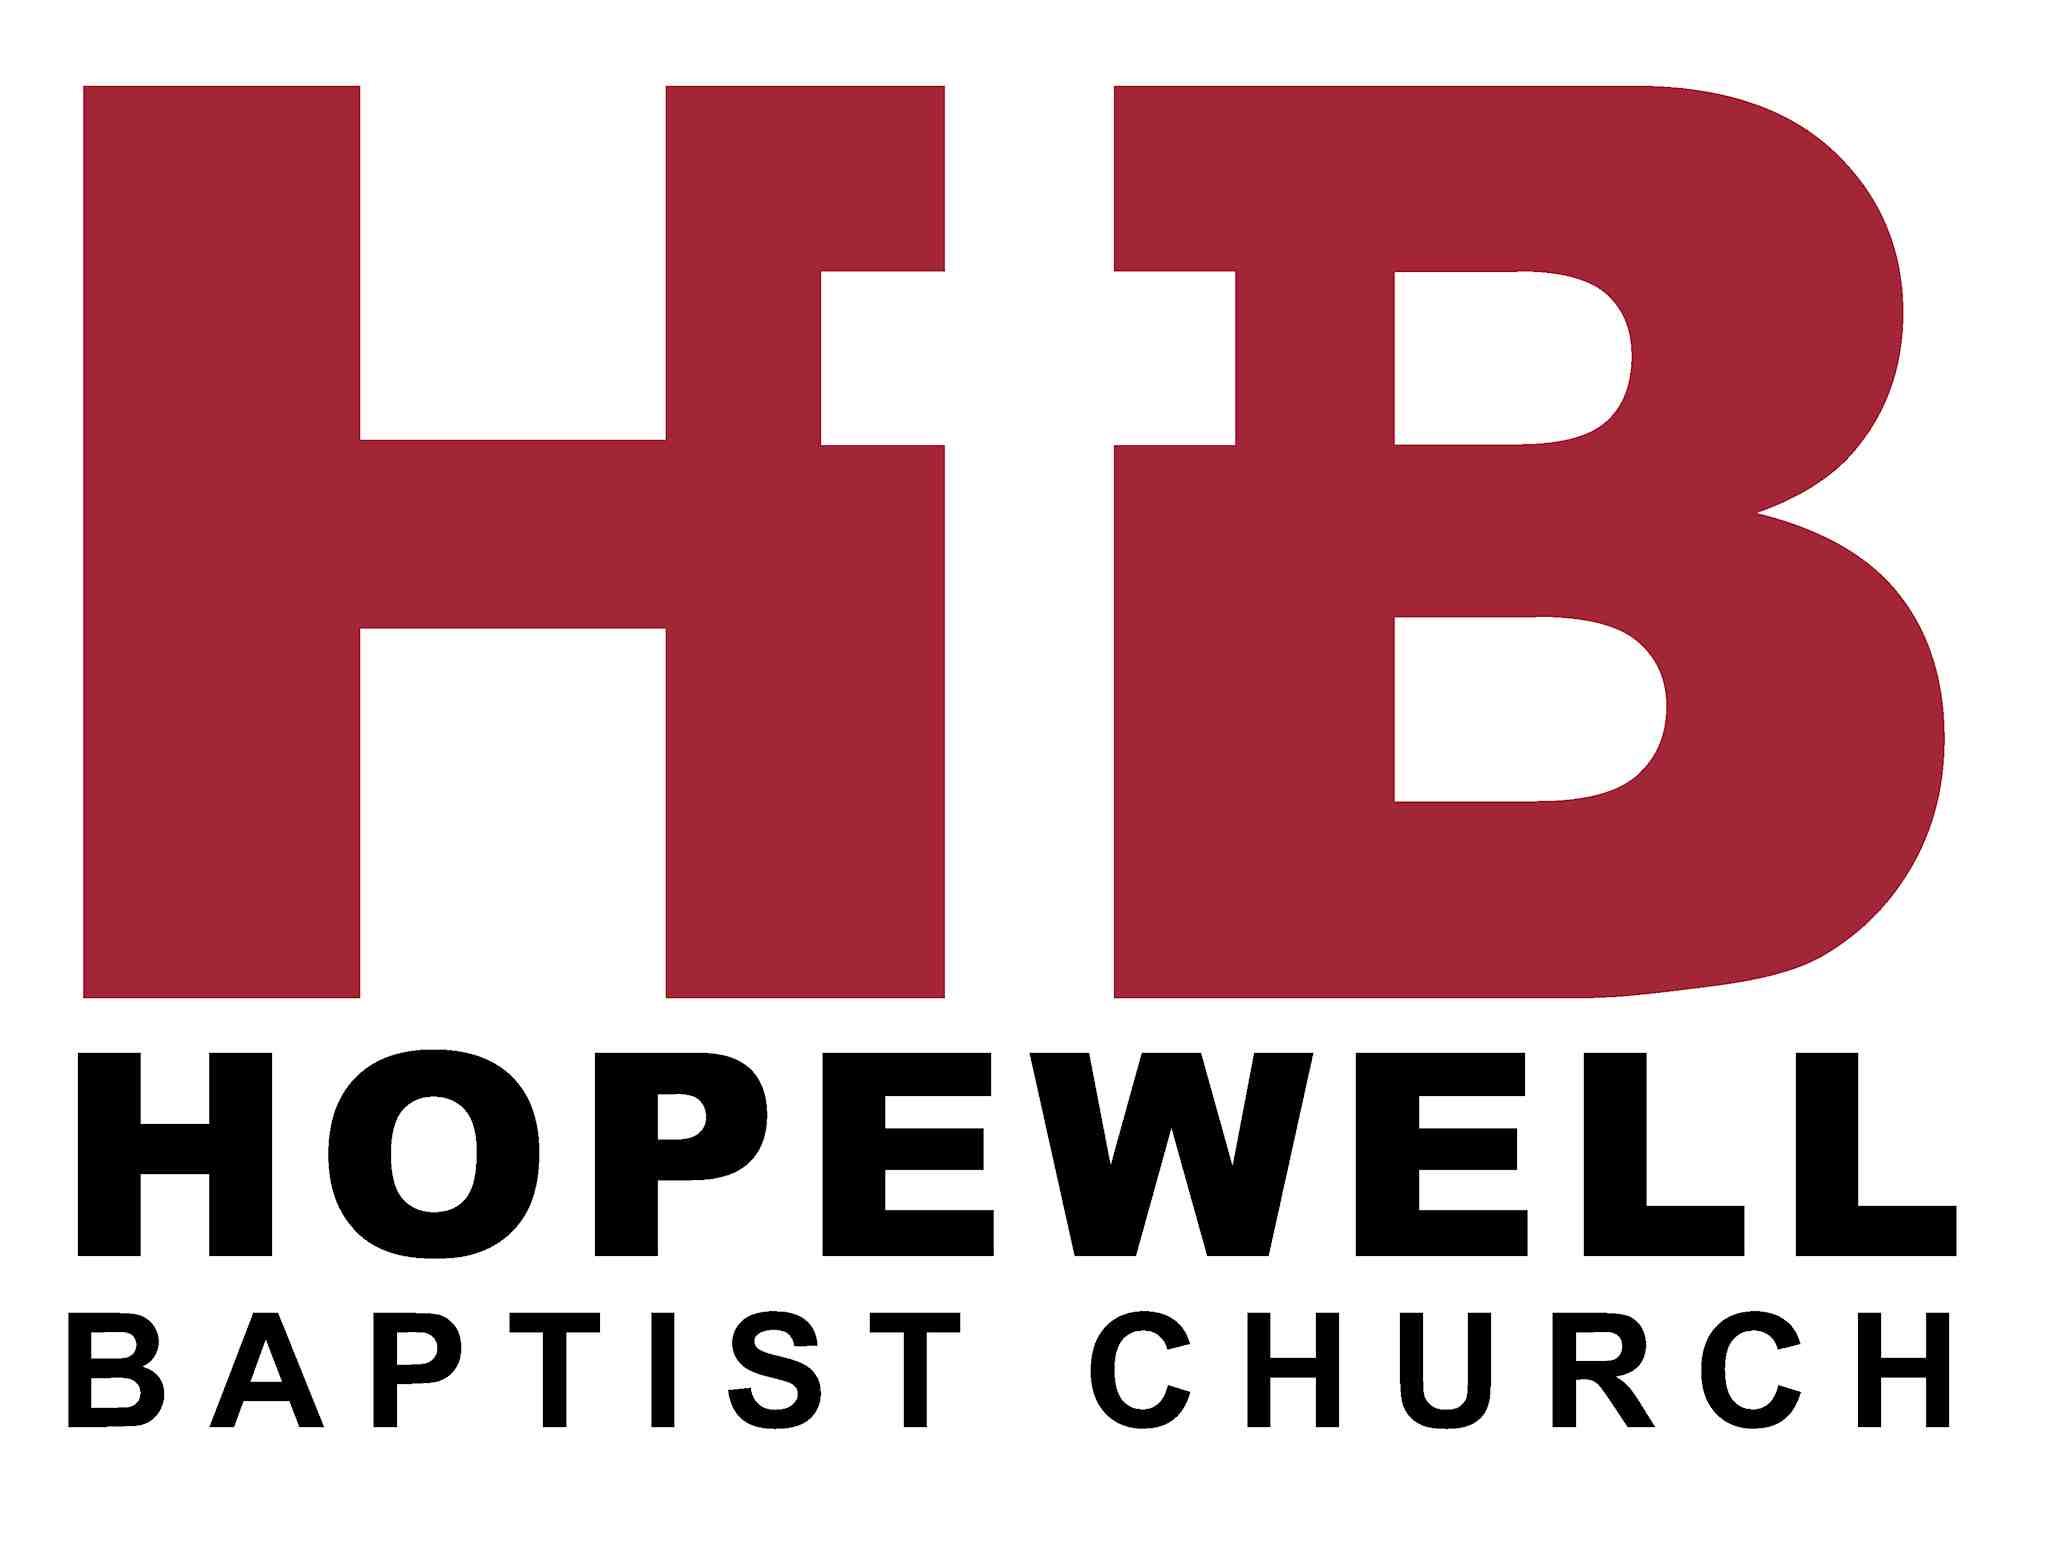 Hopewell Baptist Church, Davidson, NC